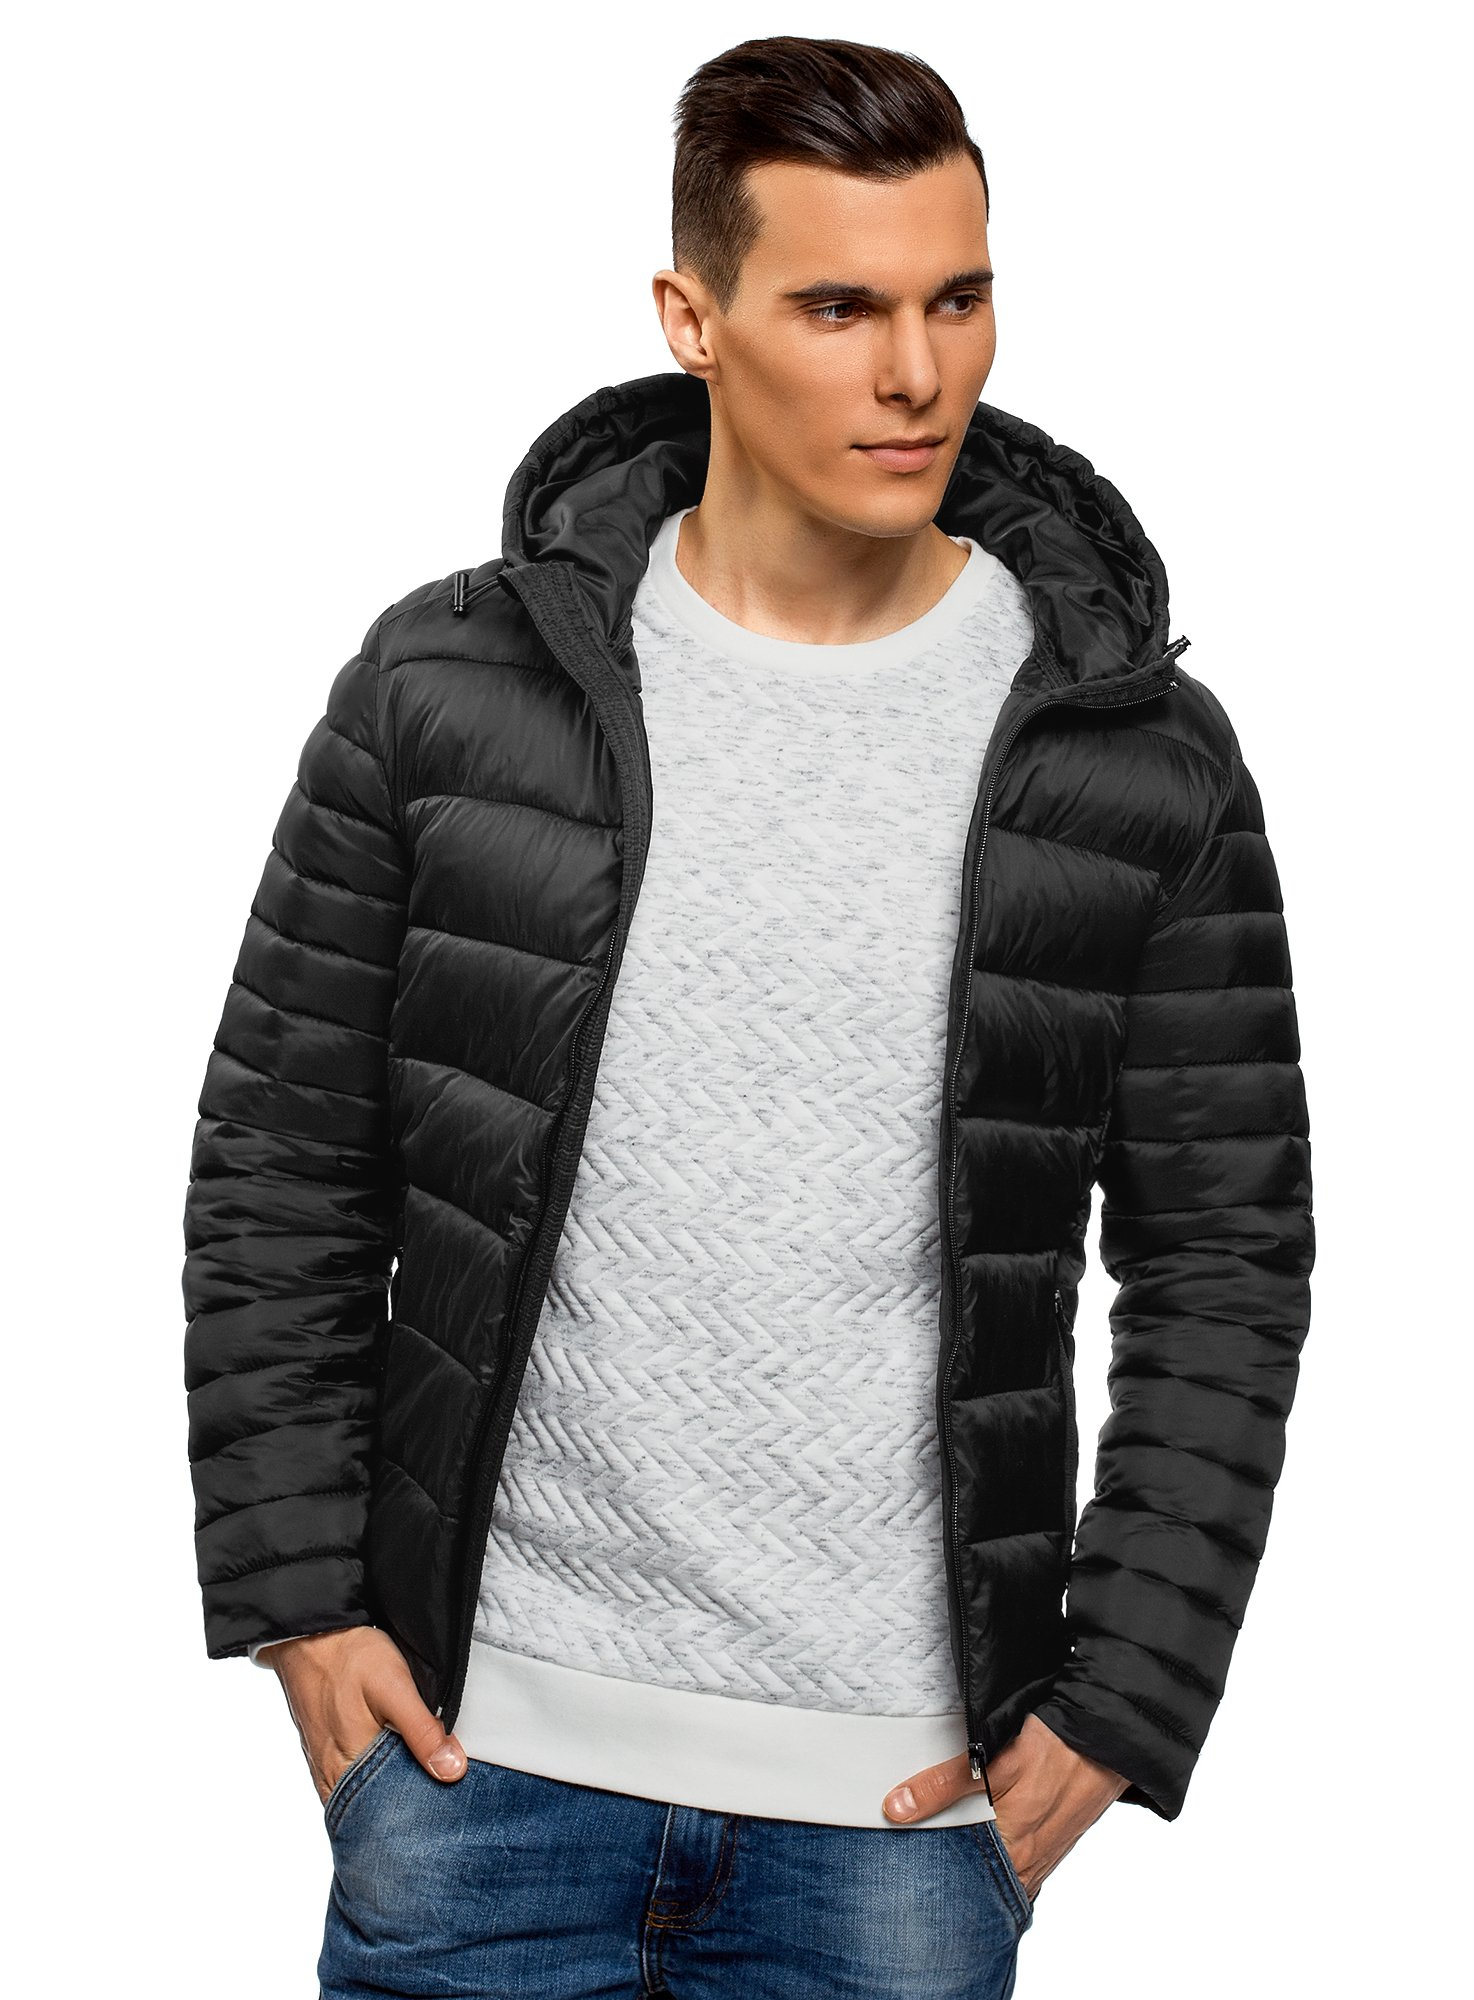 oodji Ultra Men's Basic Hooded Jacket